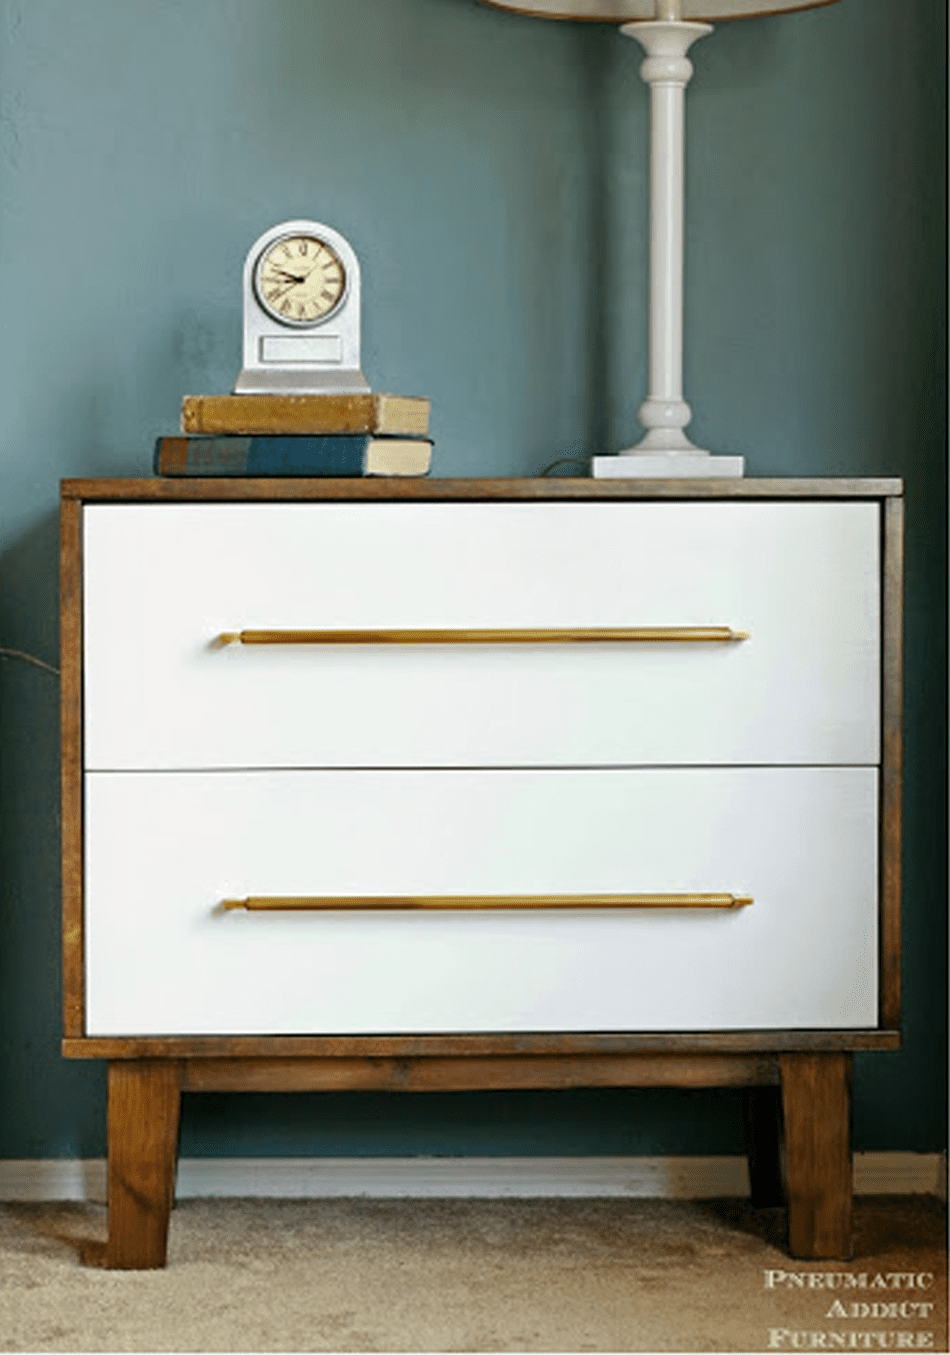 15 diy nightstand plans that are completely free pneumatic addicts free nightstand plan solutioingenieria Gallery